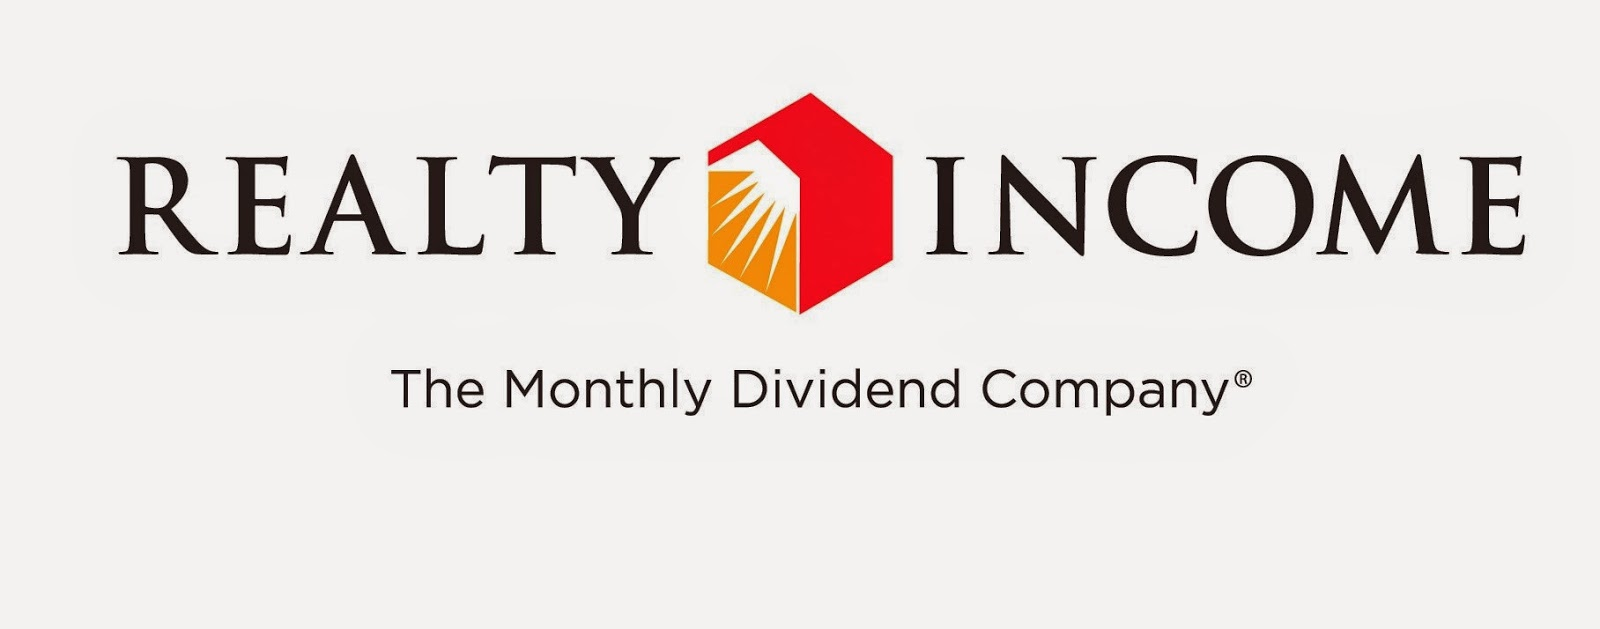 Realty Income